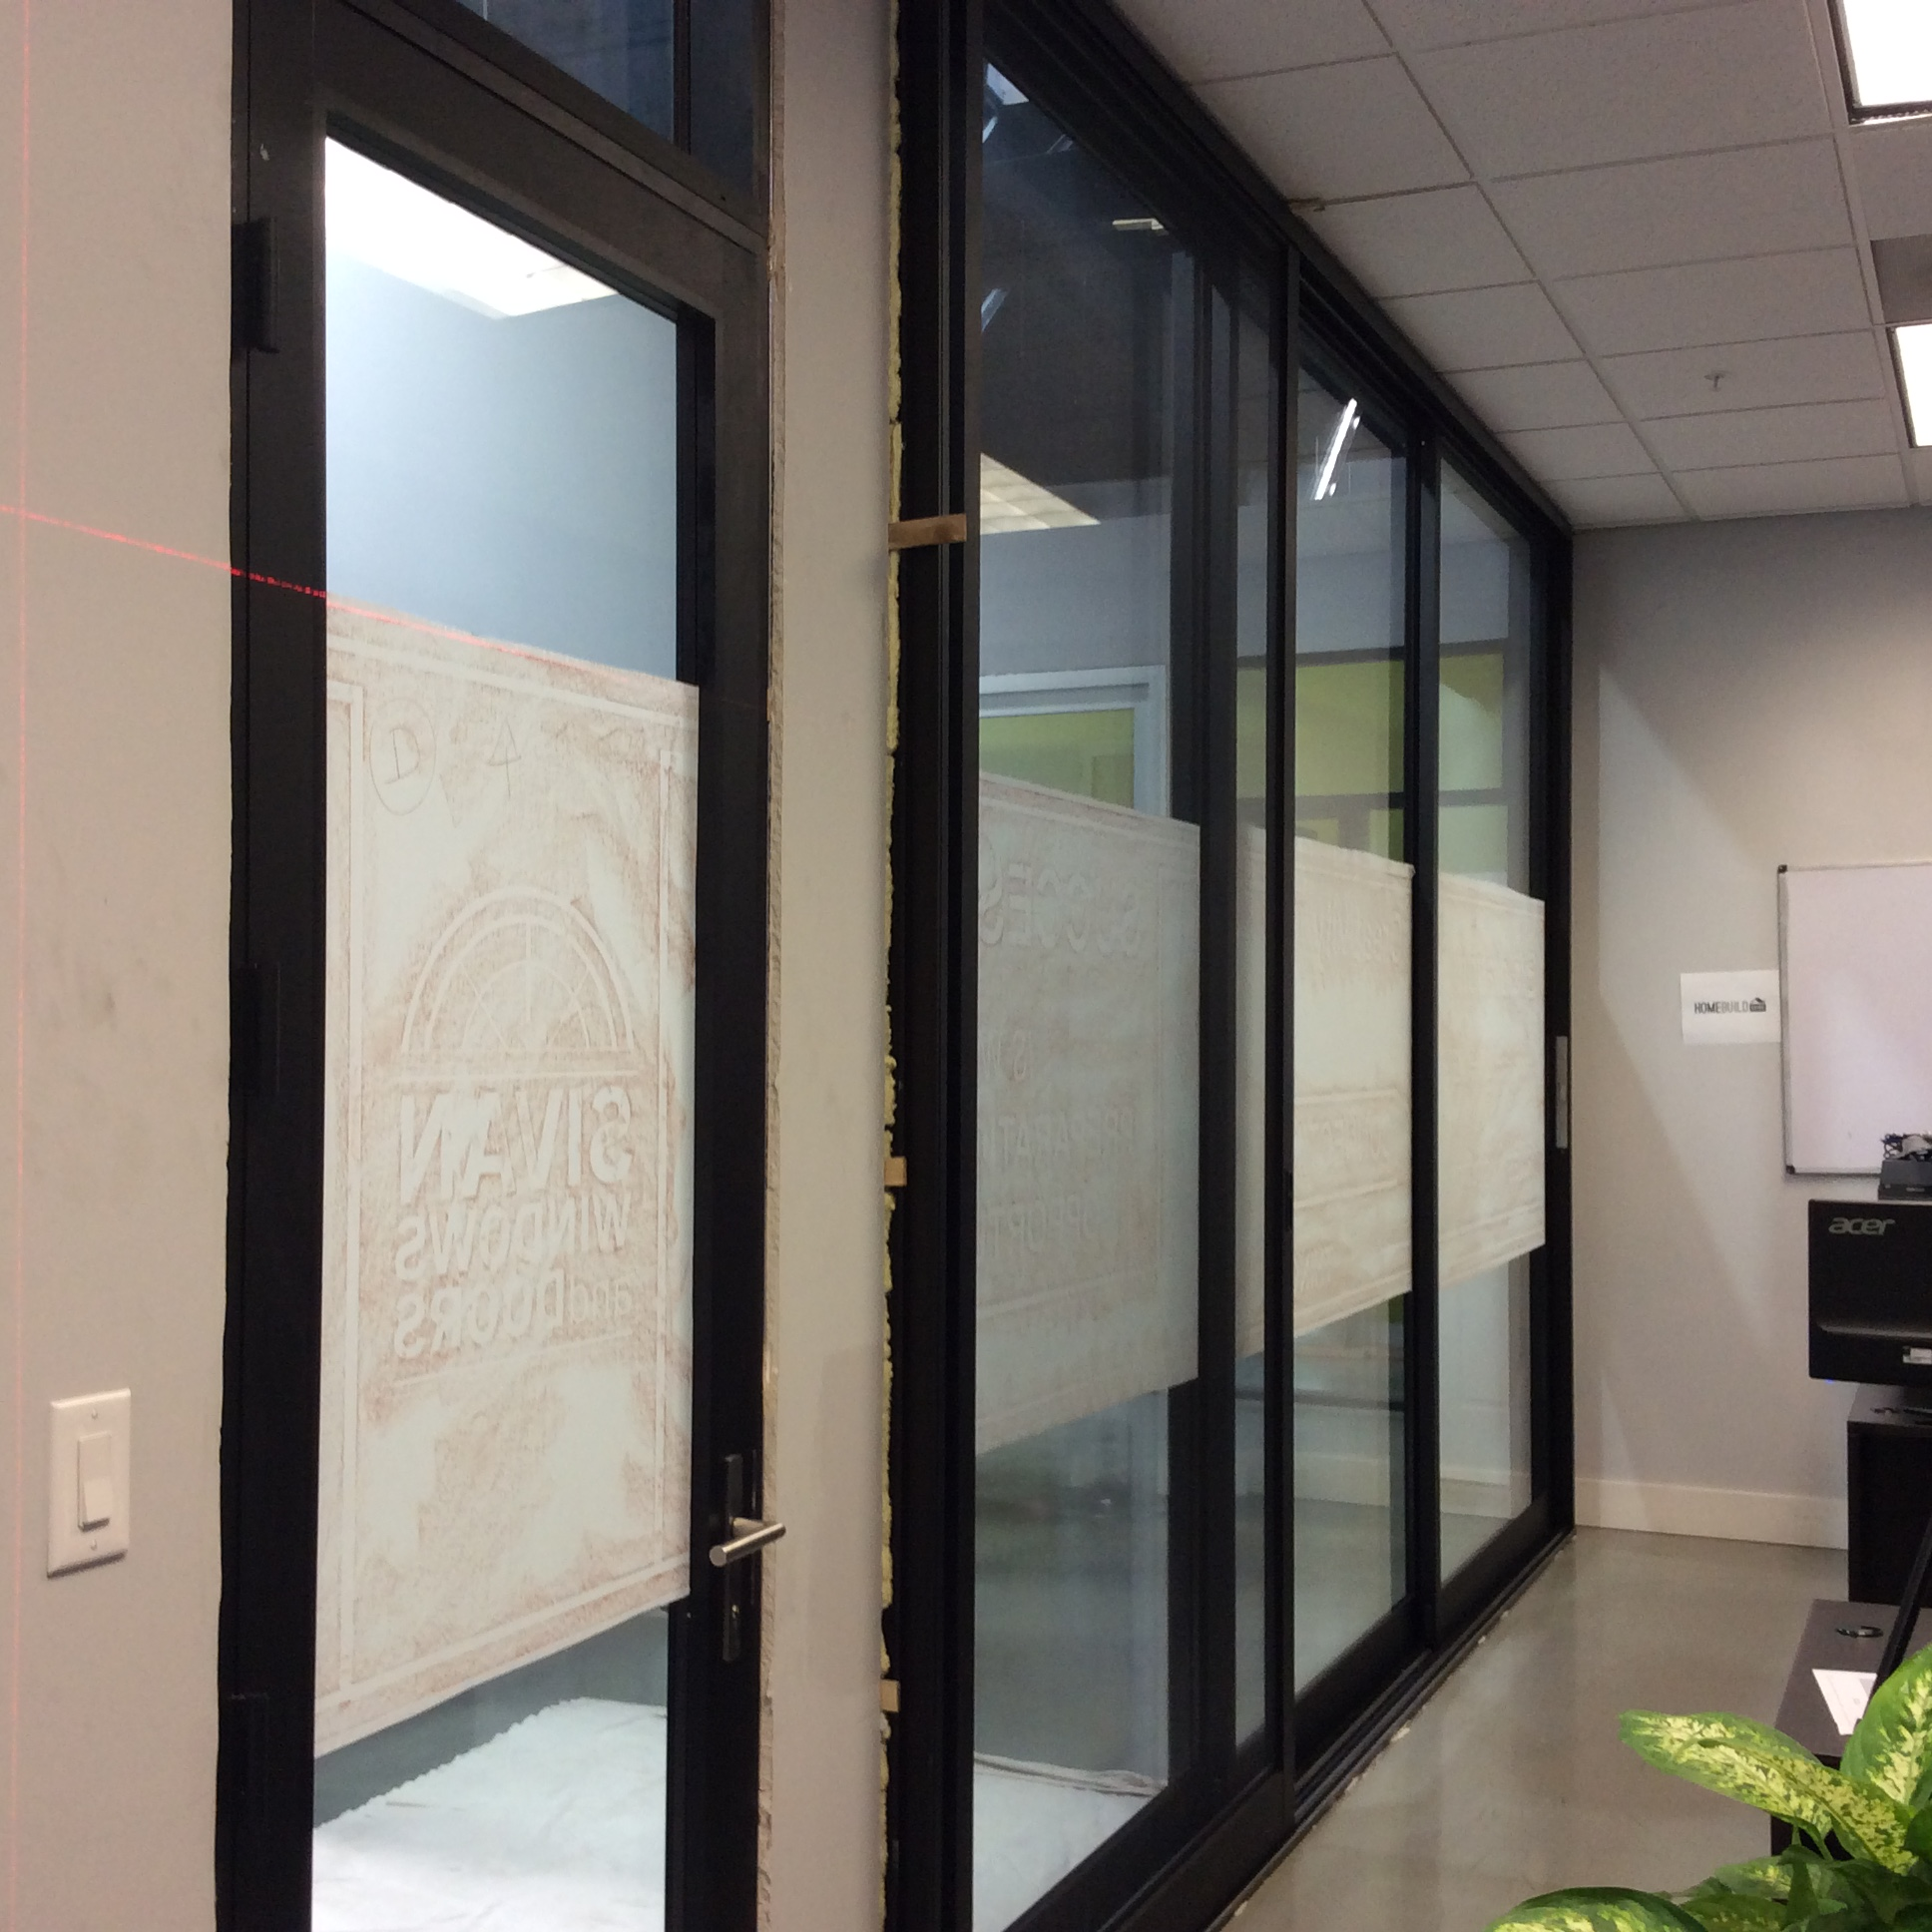 Installation Process of Custom Graphics for Office Windows